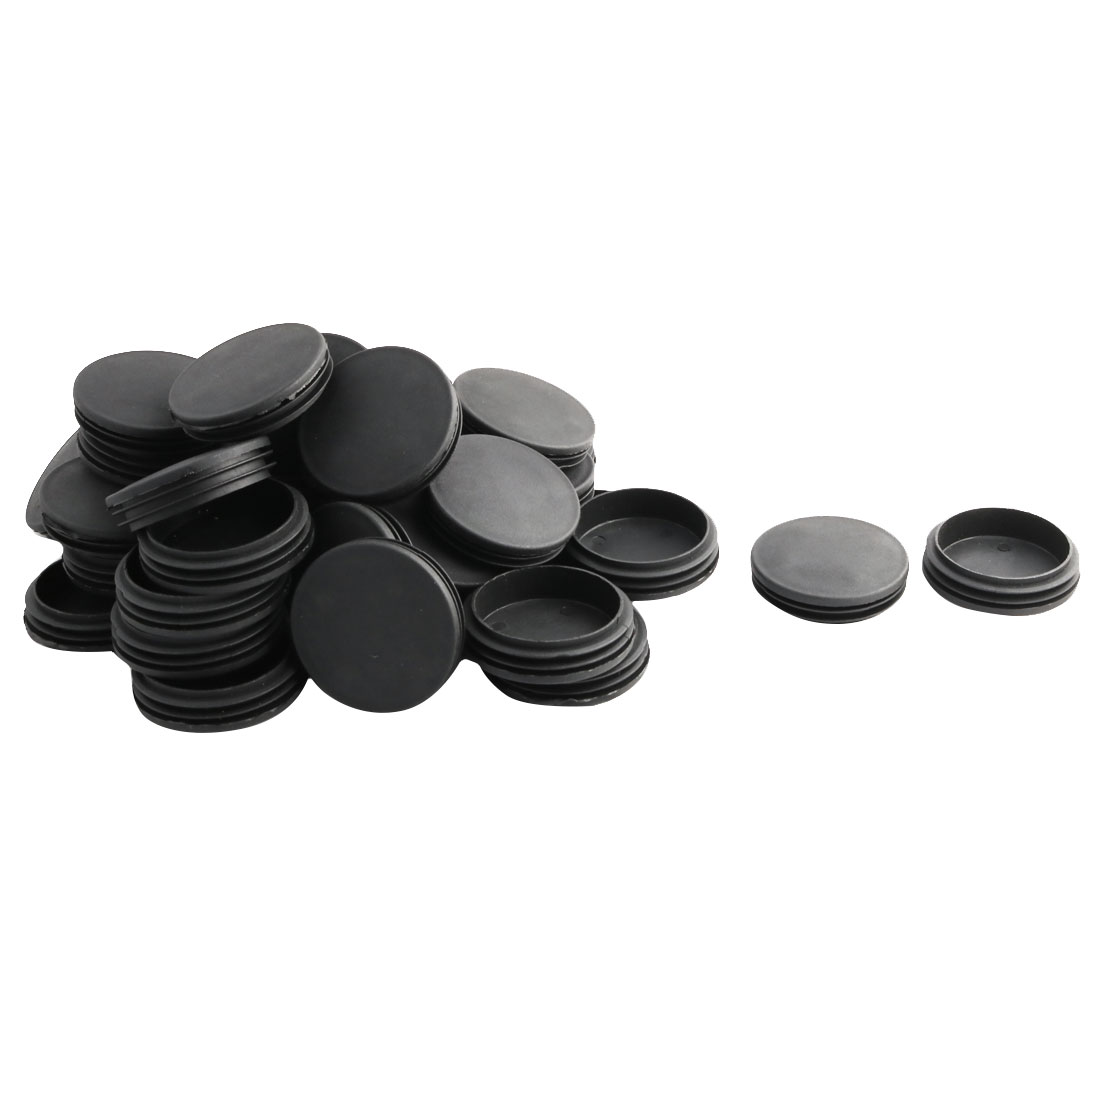 Household Office Plastic Round Furniture Legs Tube Insert Black 74mm Dia 40 Pcs